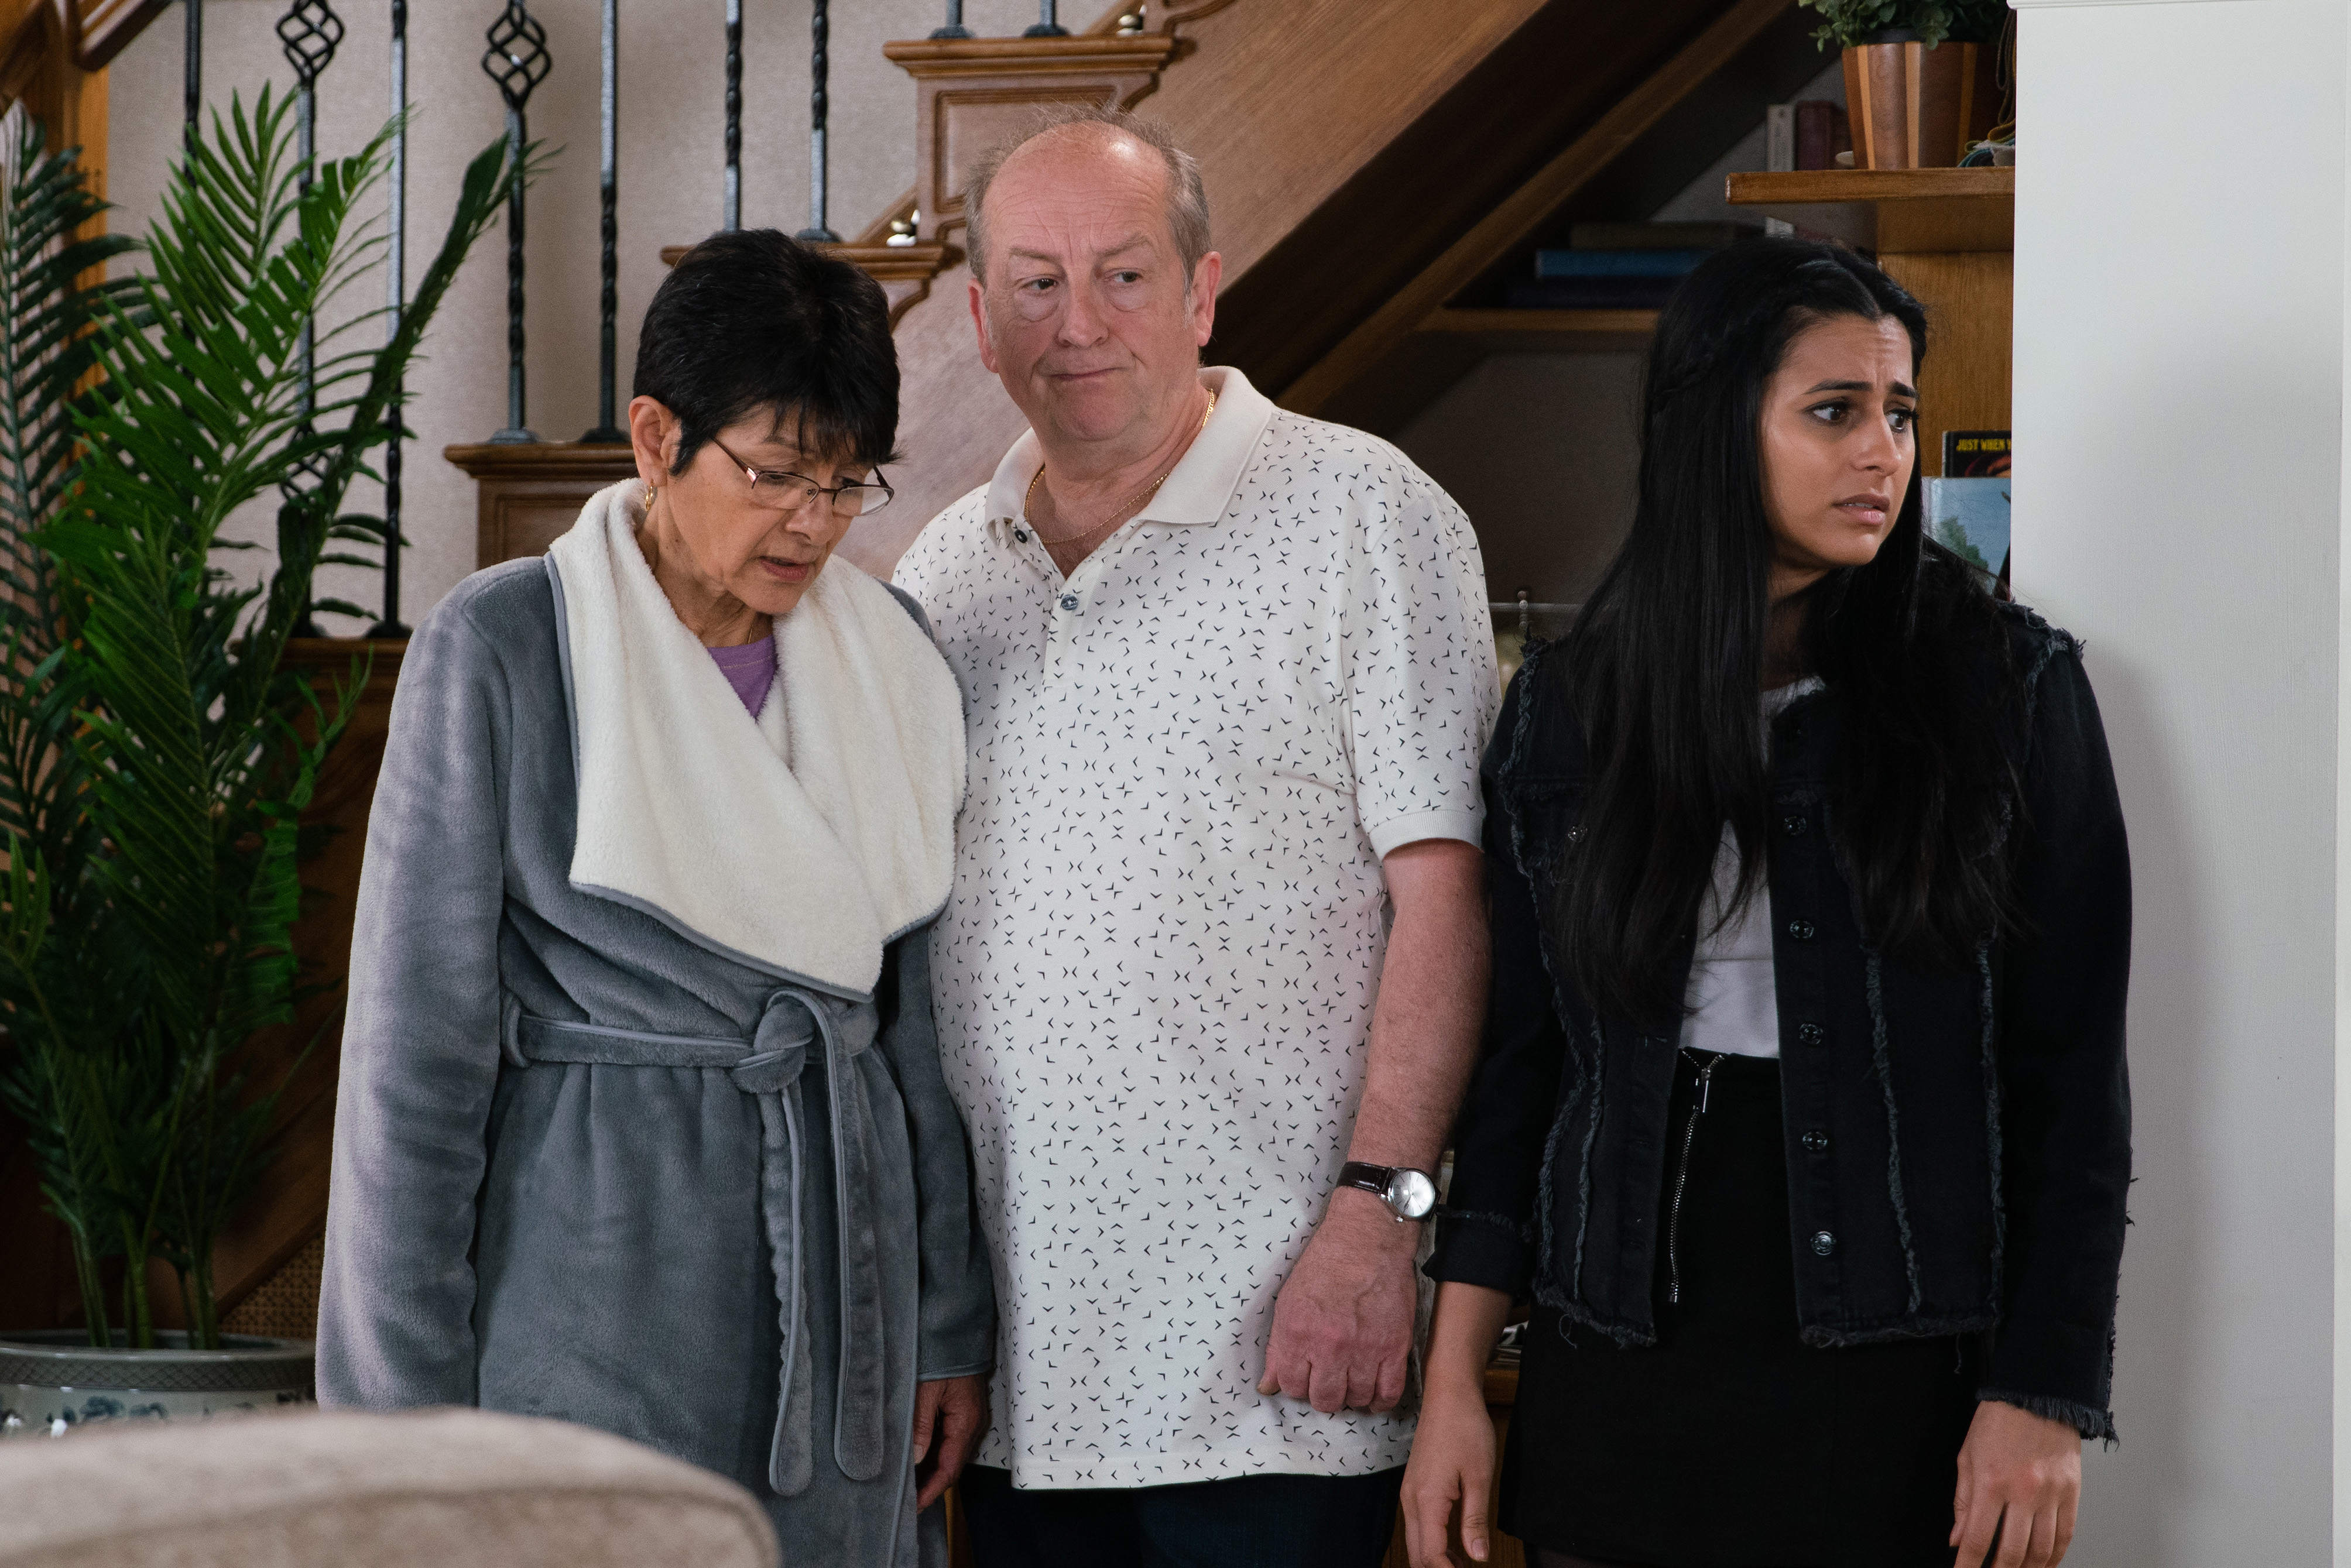 Coronation Street SPOILER: Geoff's abuse takes a dark turn